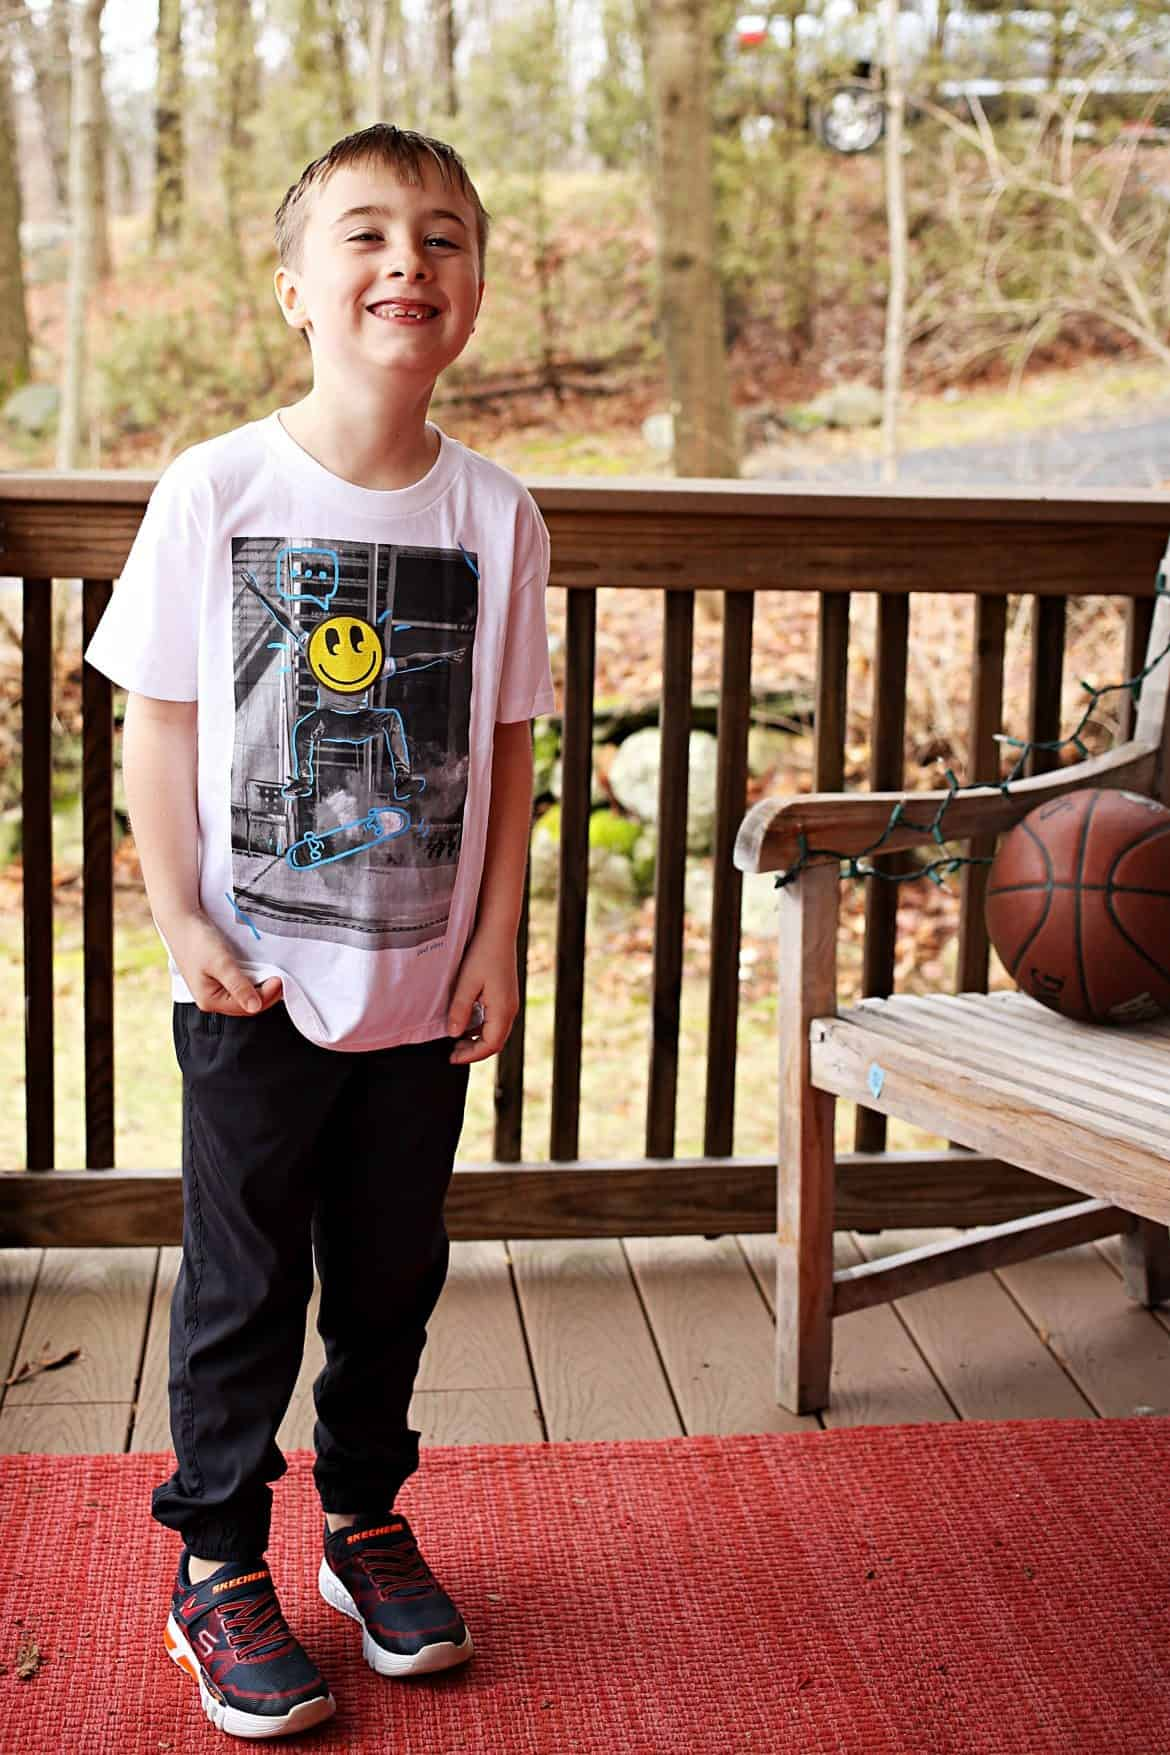 Rock Your Son's Style with Stitch Fix Kids for Boys #stitchfix #stitchfixkids #kidsfashion #boysfashion #boyoutfitideas